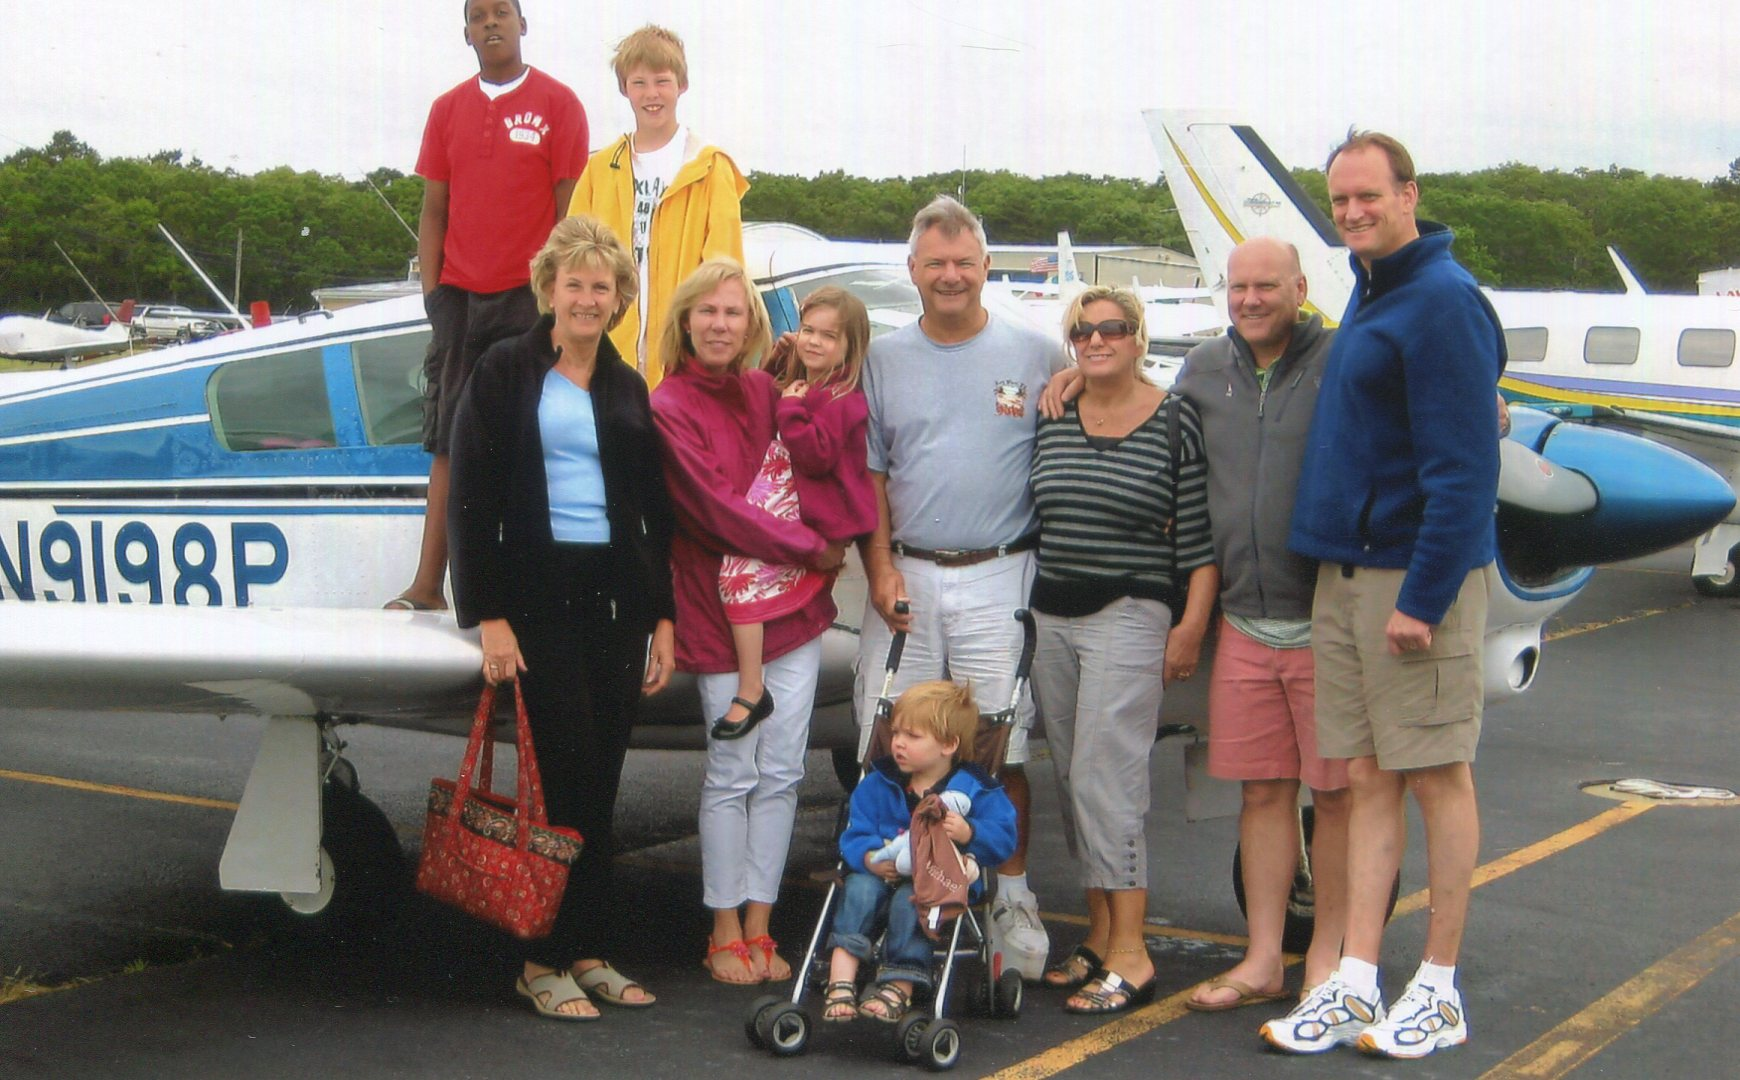 Kris and Inge with cousins at East Hampton, NY airport in June 2012